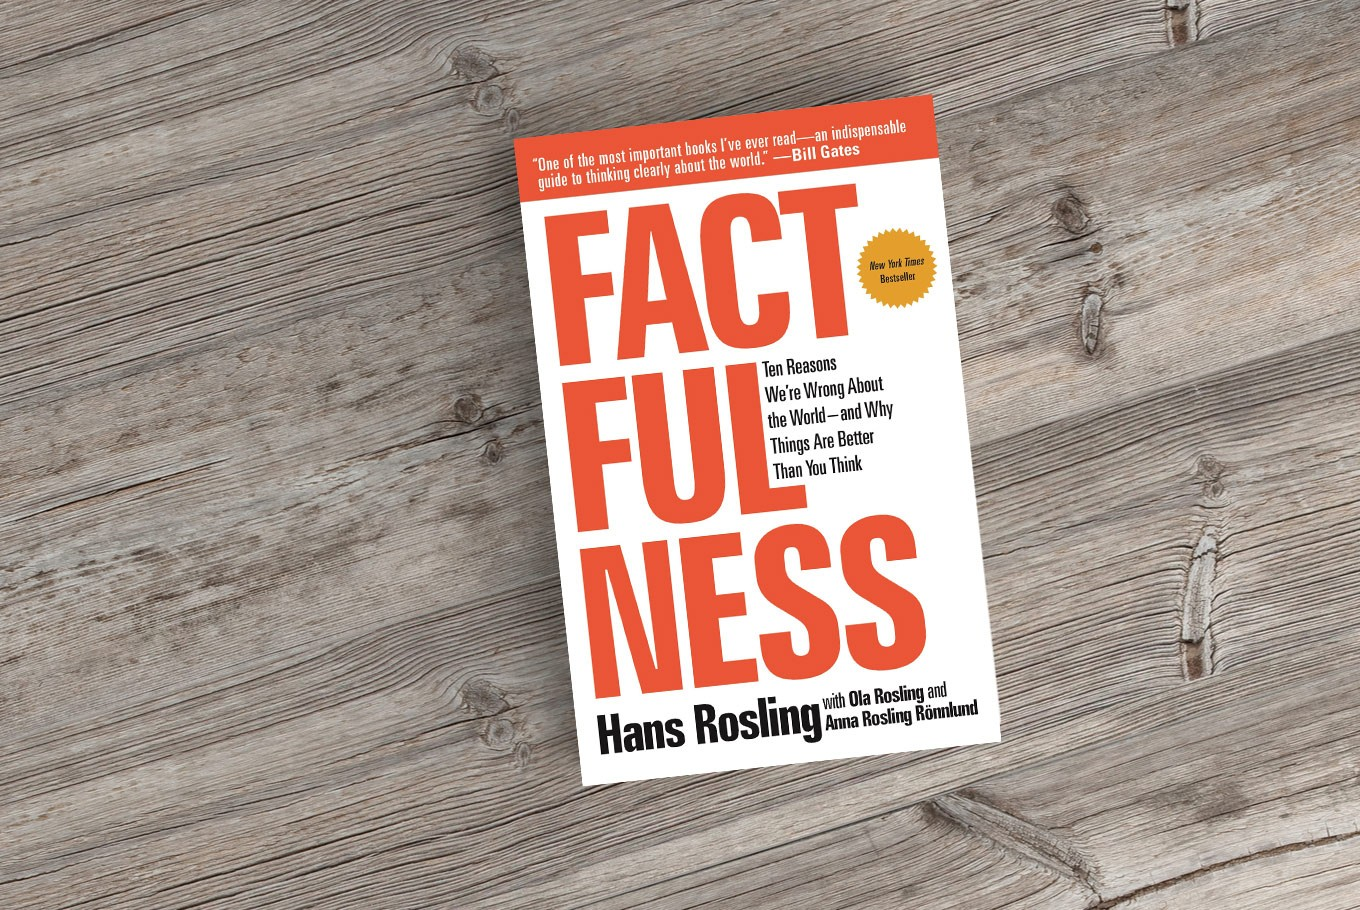 'Factfulness': When numbers ring true on world progress